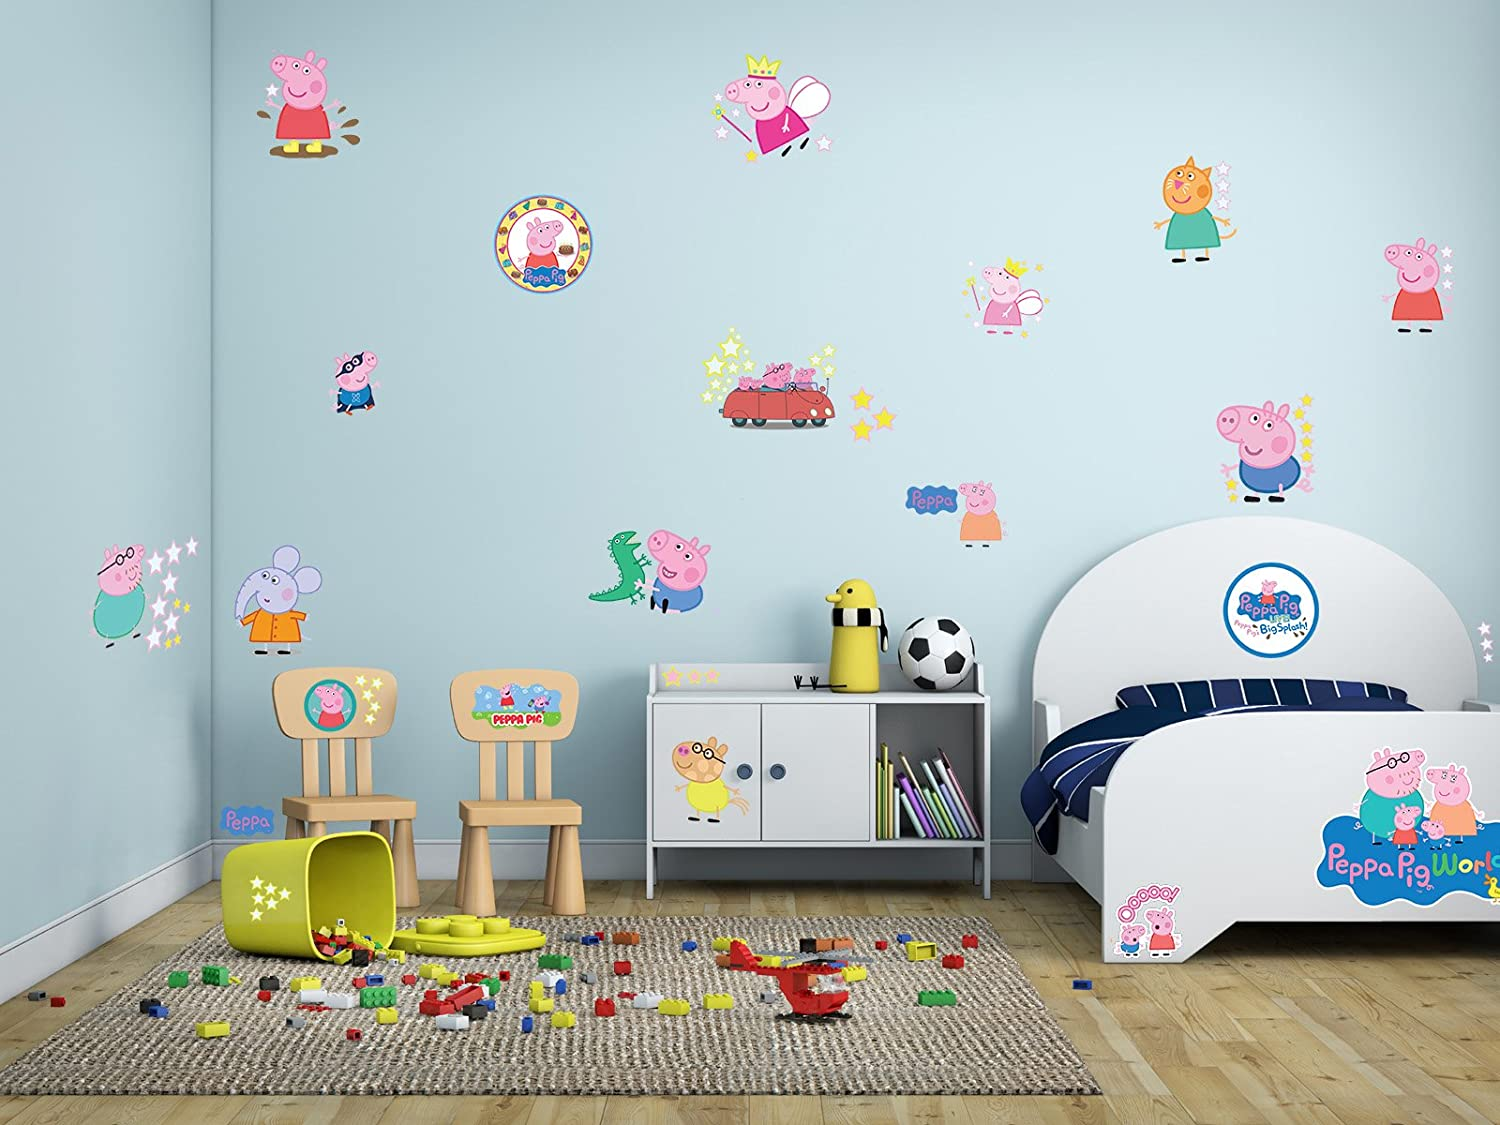 Peppa pig wall mural image collections home wall decoration ideas peppa pig wall stickers decal kids room bedroom children peppa001 peppa pig wall stickers decal kids amipublicfo Images